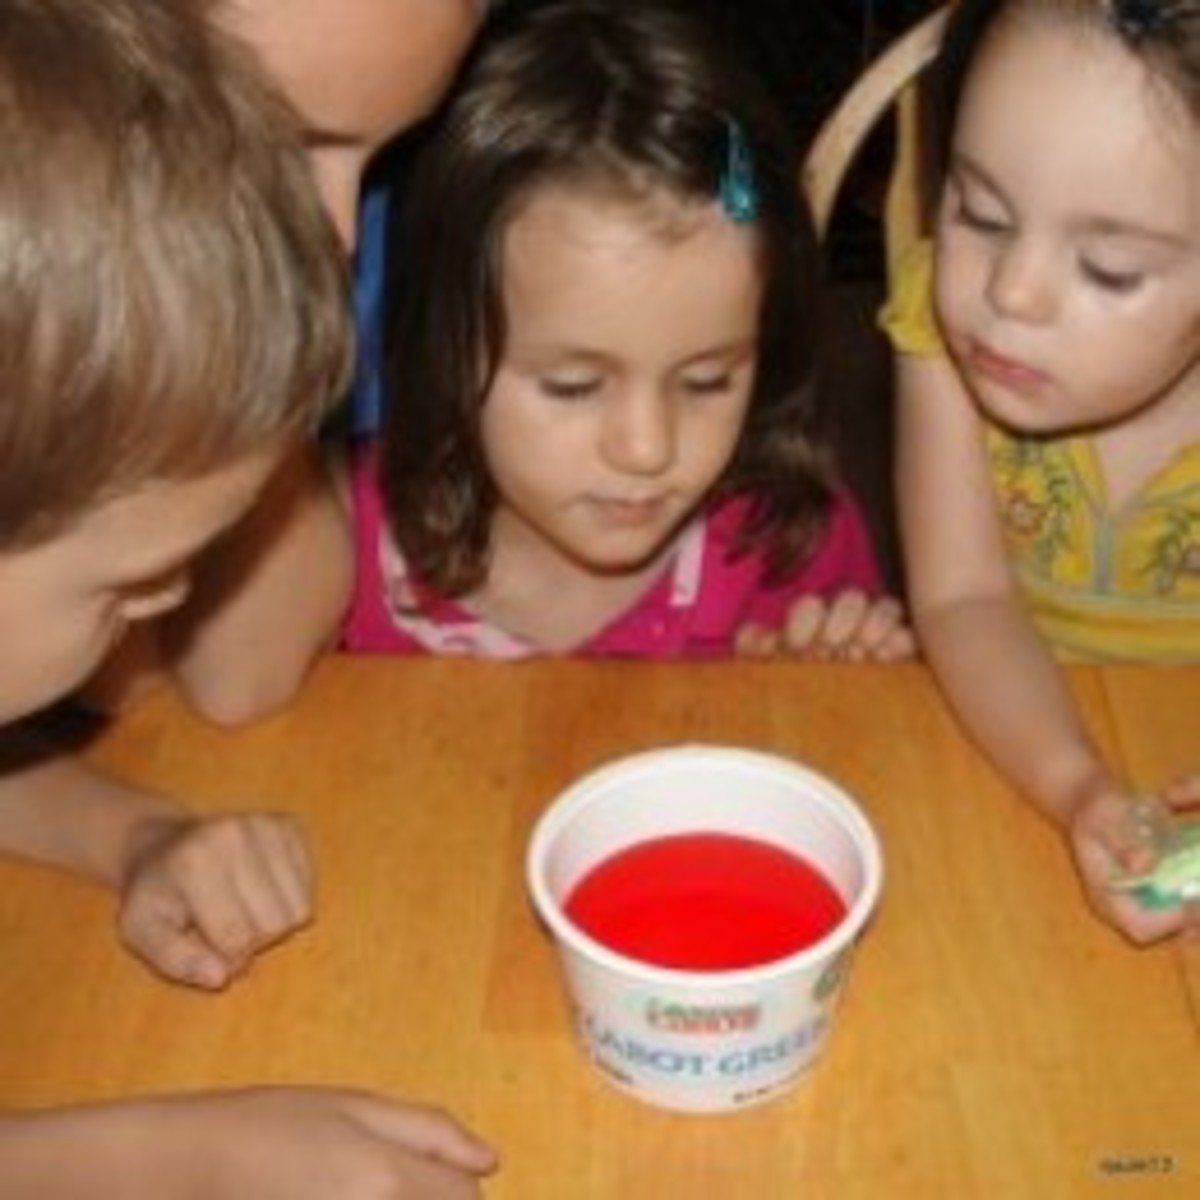 Observing a chemical reaction